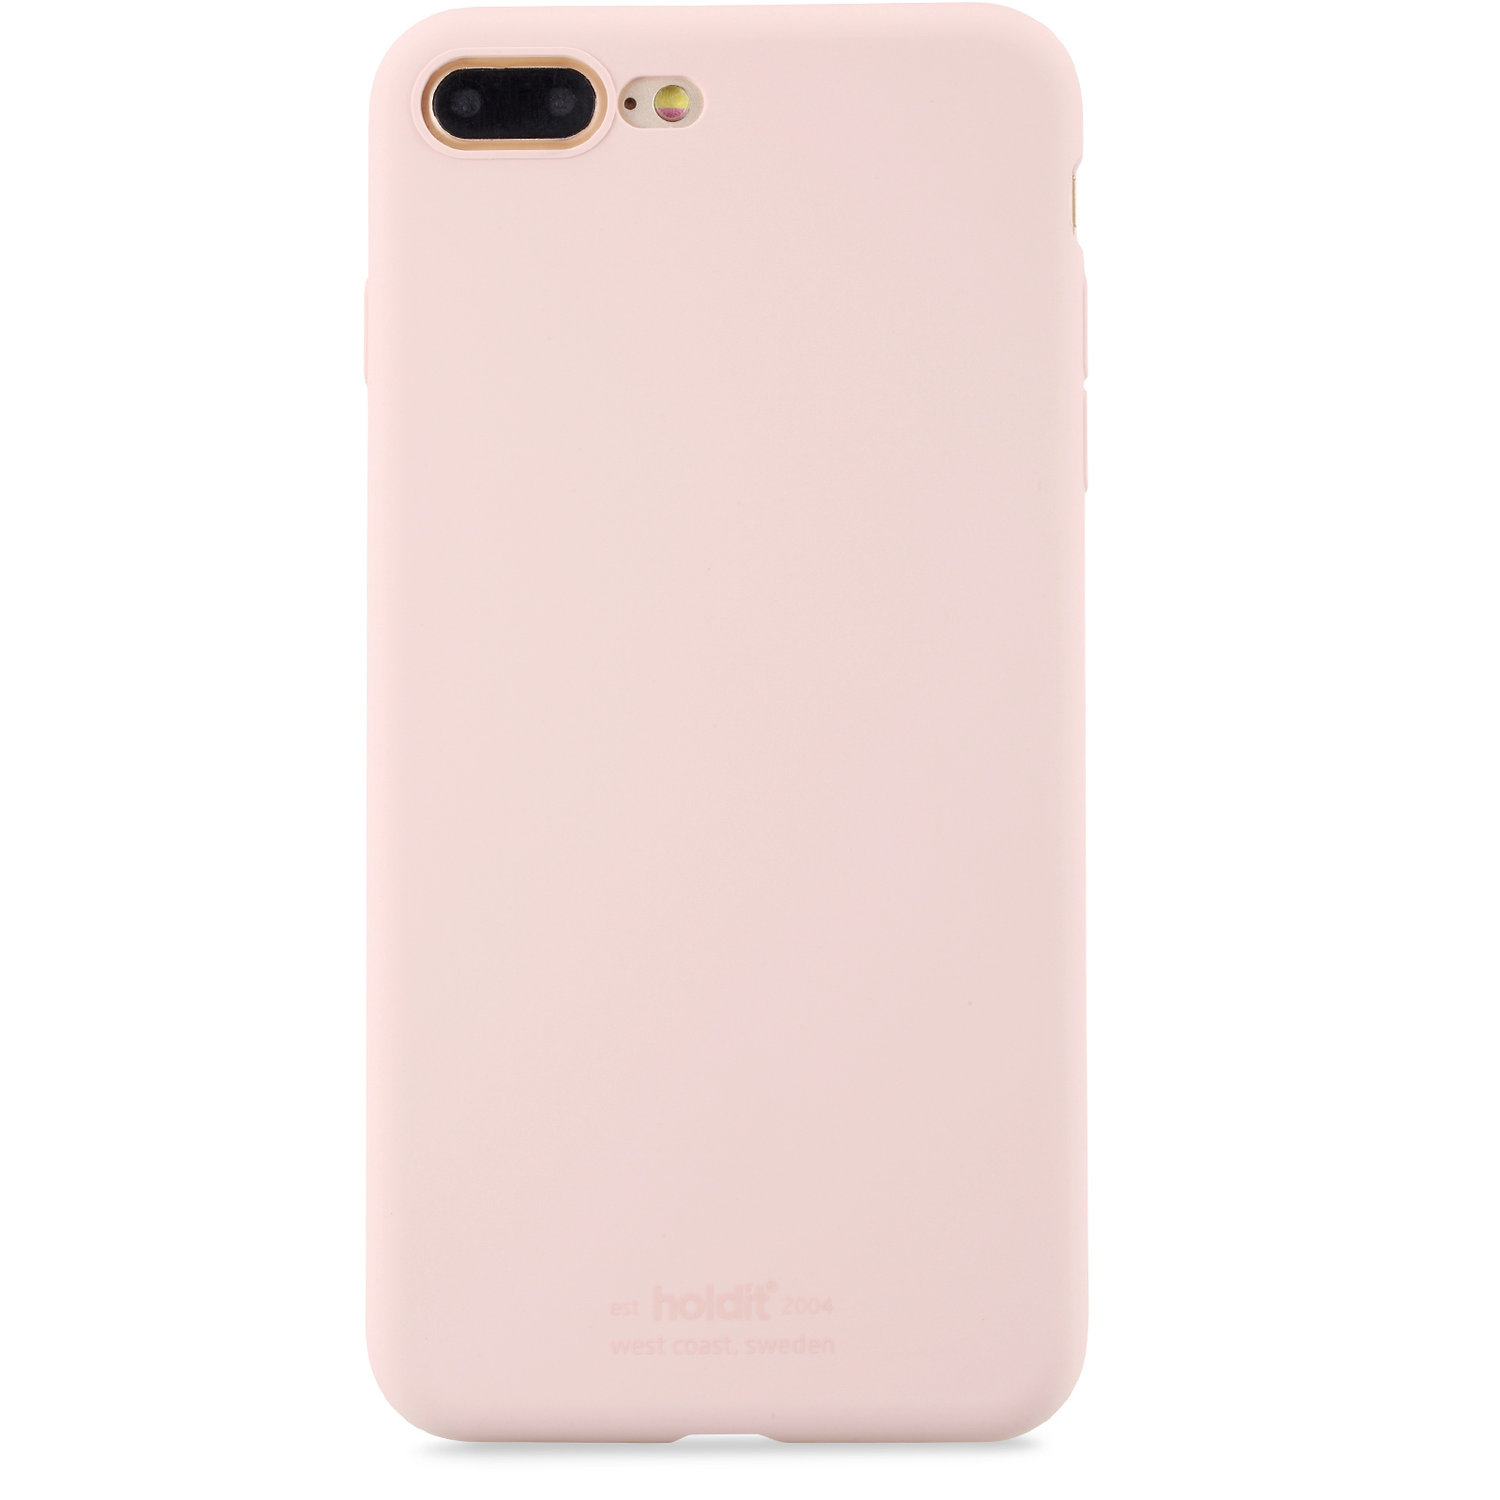 Holdit- MOBILSKAL SILIKON BLUSH PINK- iPhone 7/8 Plus